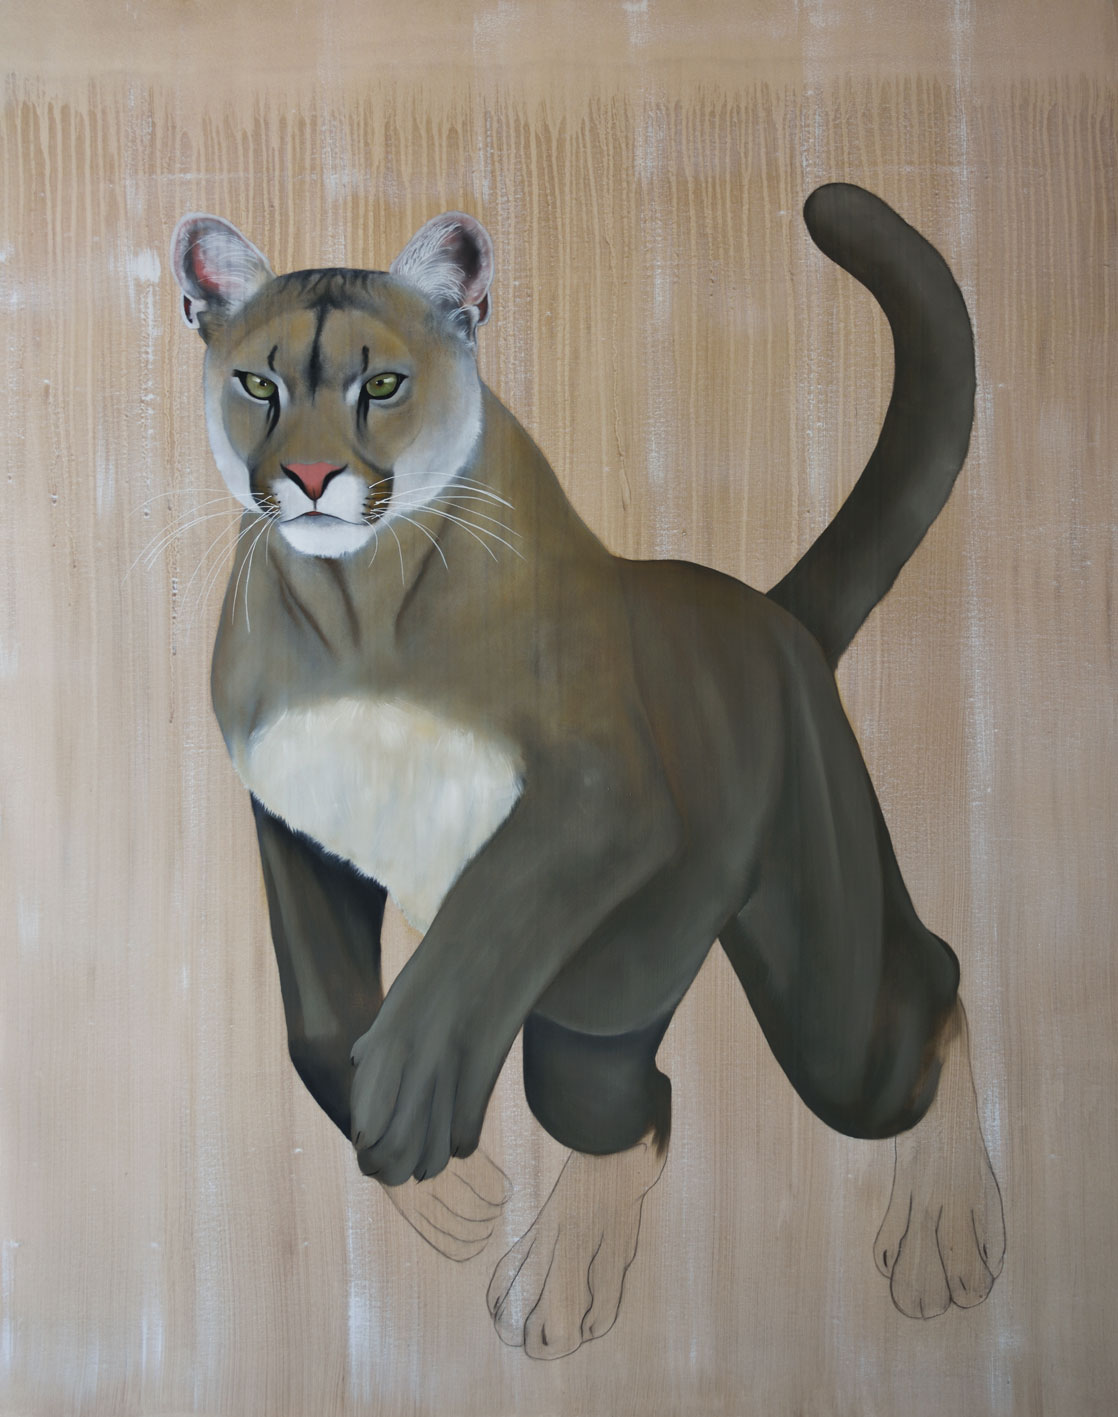 PUMA CONCOLOR CORYI COUGAR-PUMA Thierry Bisch painter animals painting art decoration hotel design interior luxury nature biodiversity conservation